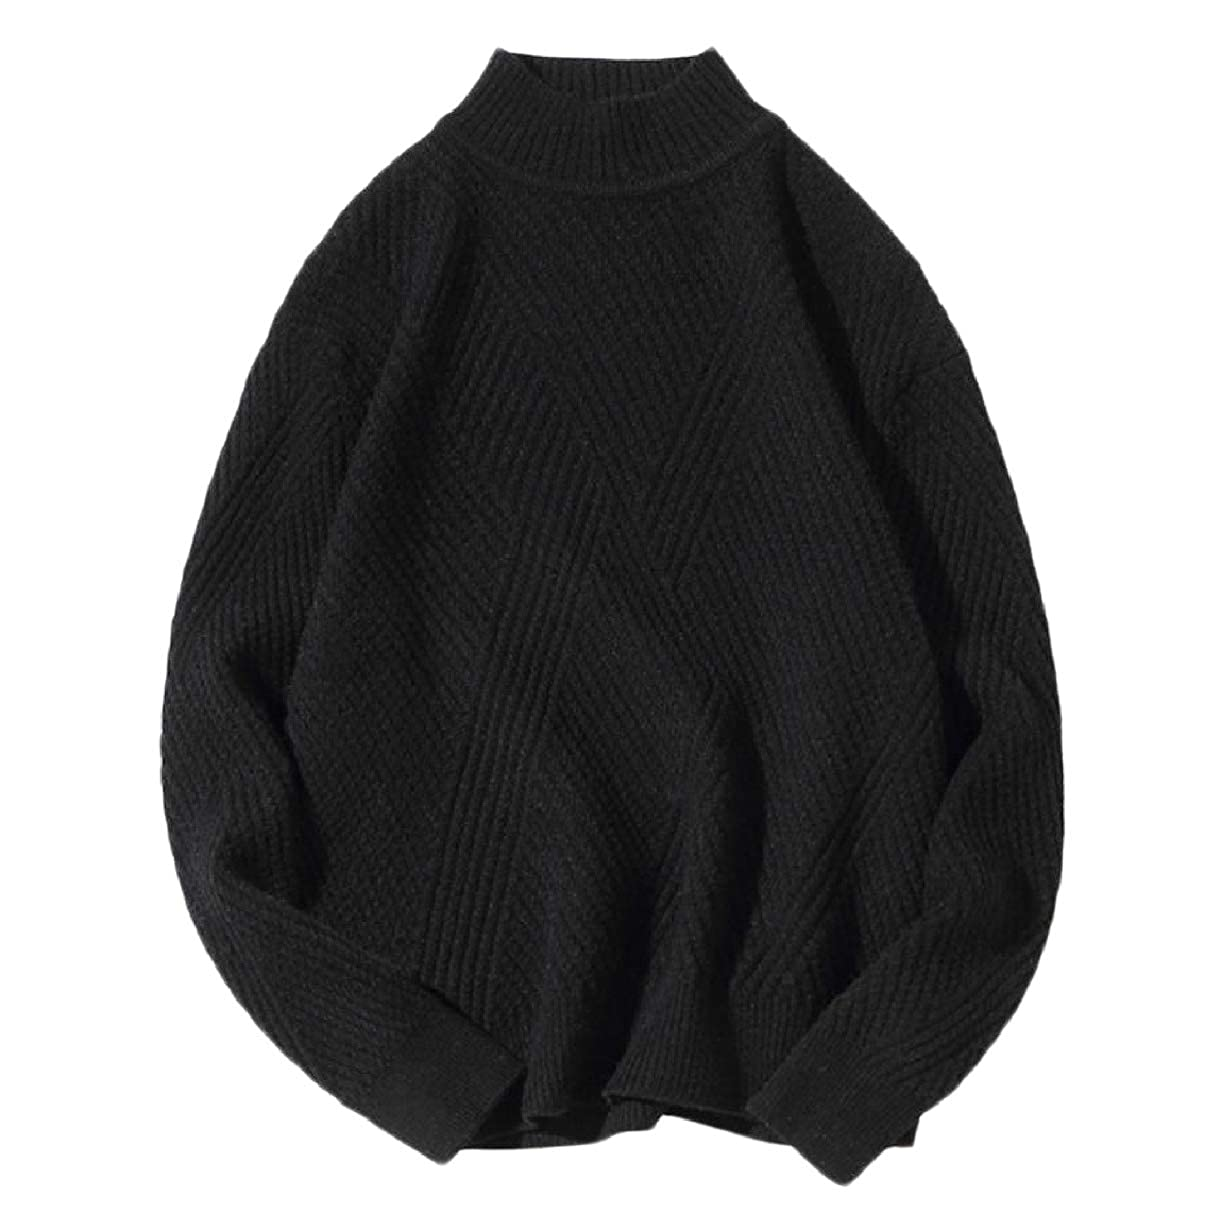 Abetteric Men Soft Winter Relaxed-Fit Ribbed Select Knit Sweater Blouse